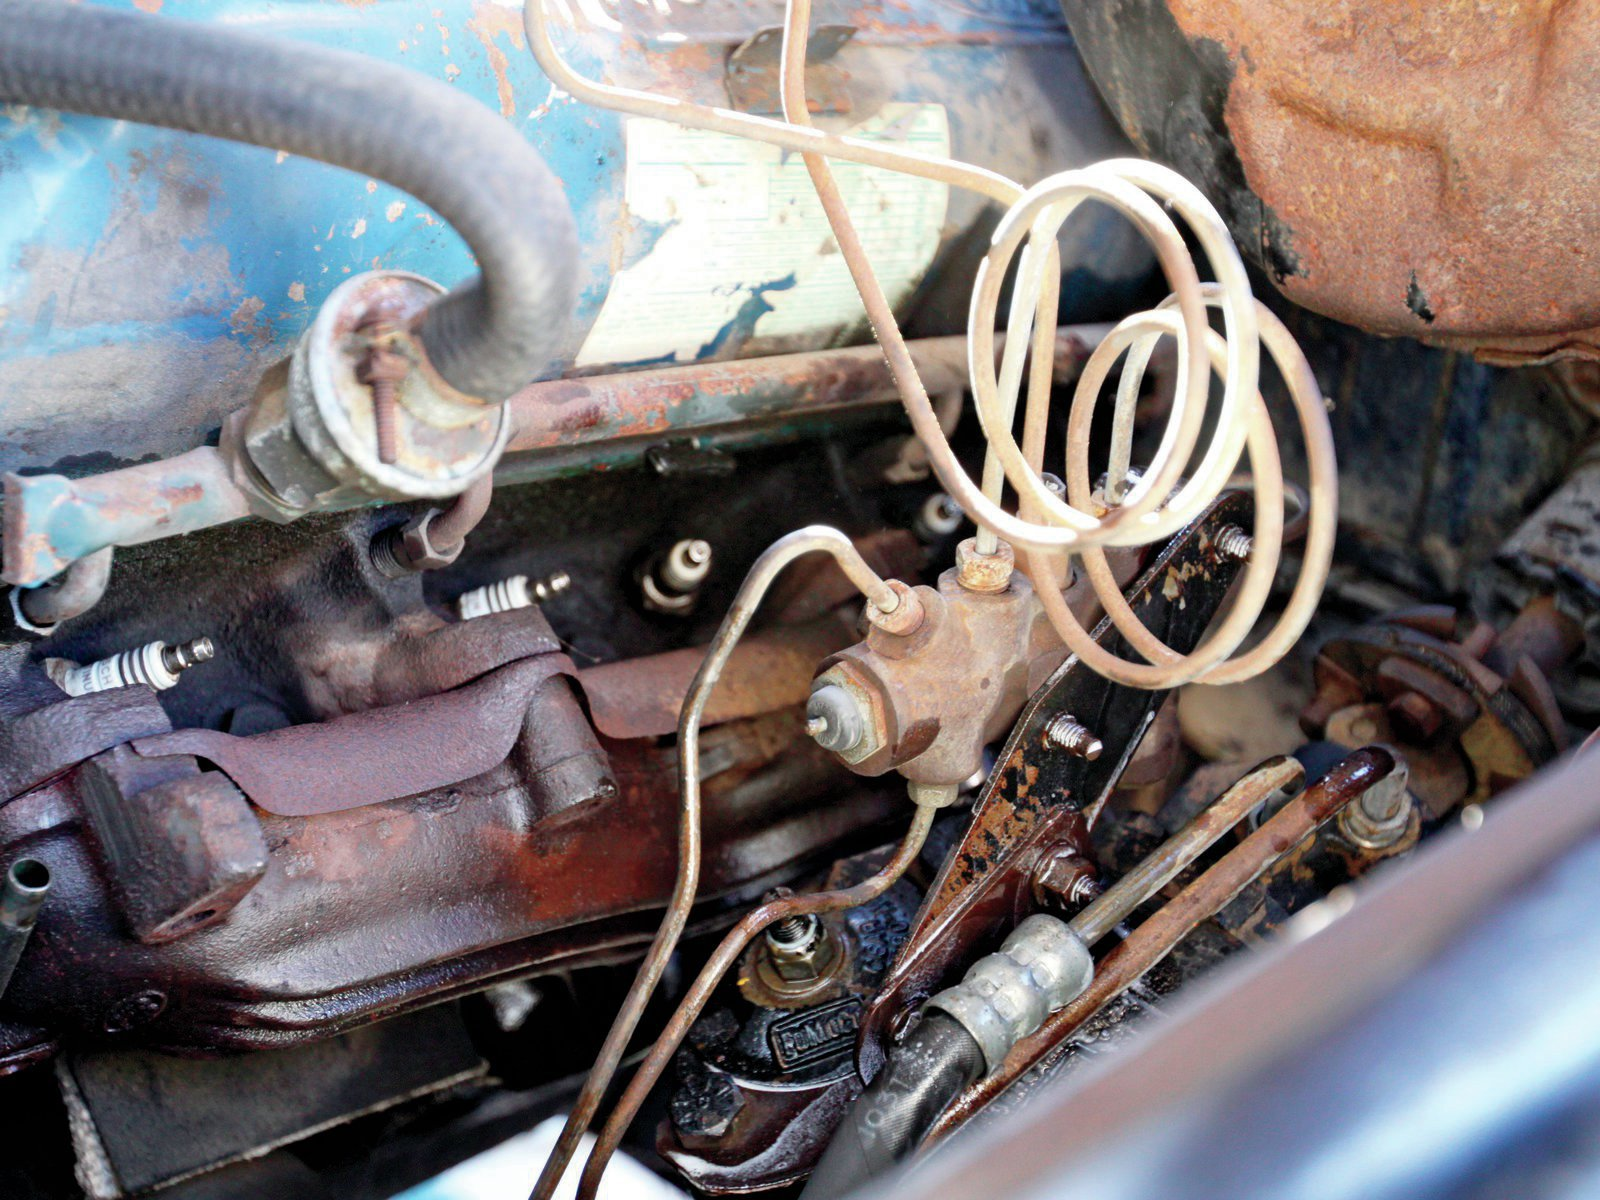 10. See the wet bolts? For any disassembly work it's a good idea to presoak with penetrating oil. I didn't break the lines, the proportioning valve pushed to one side for clearance.